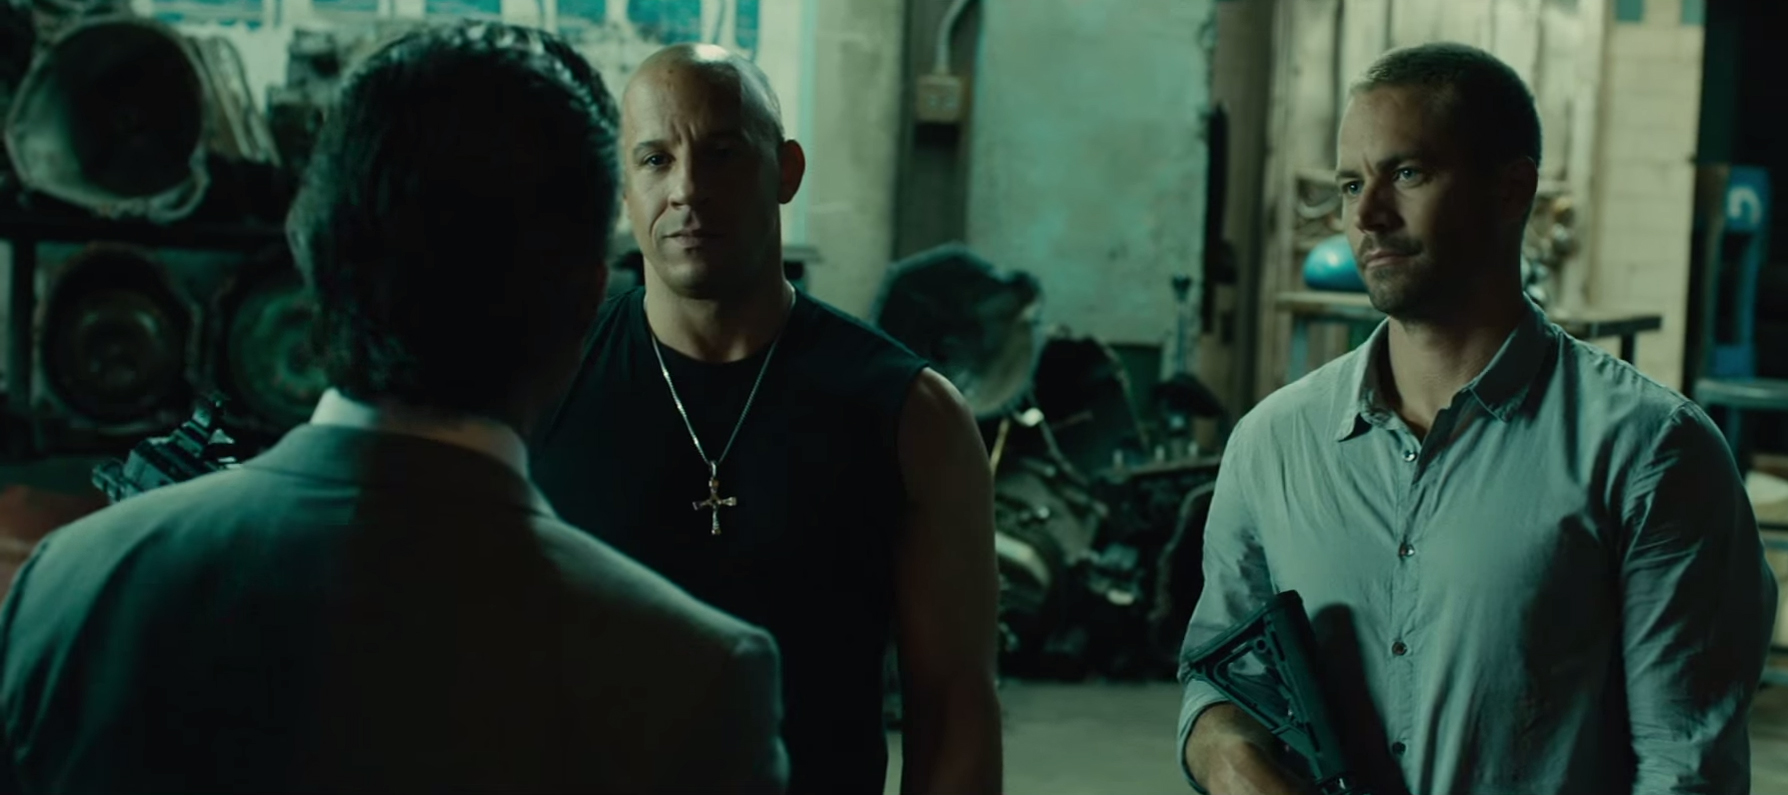 Ketting Vin Diesel in Furious 7 (2015)